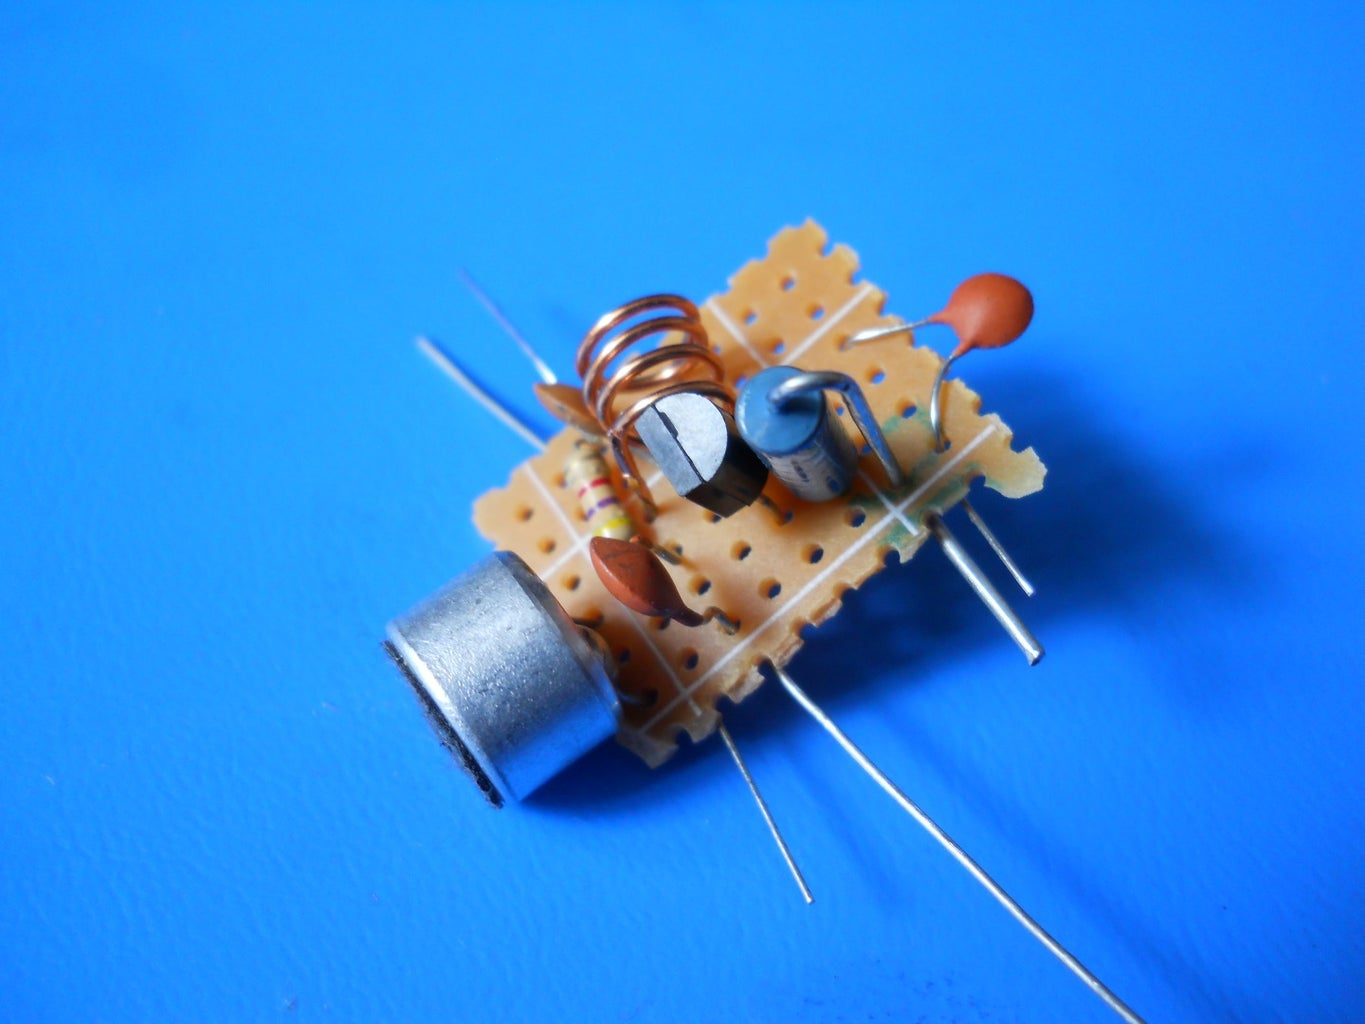 Heat Up Your Soldering Iron